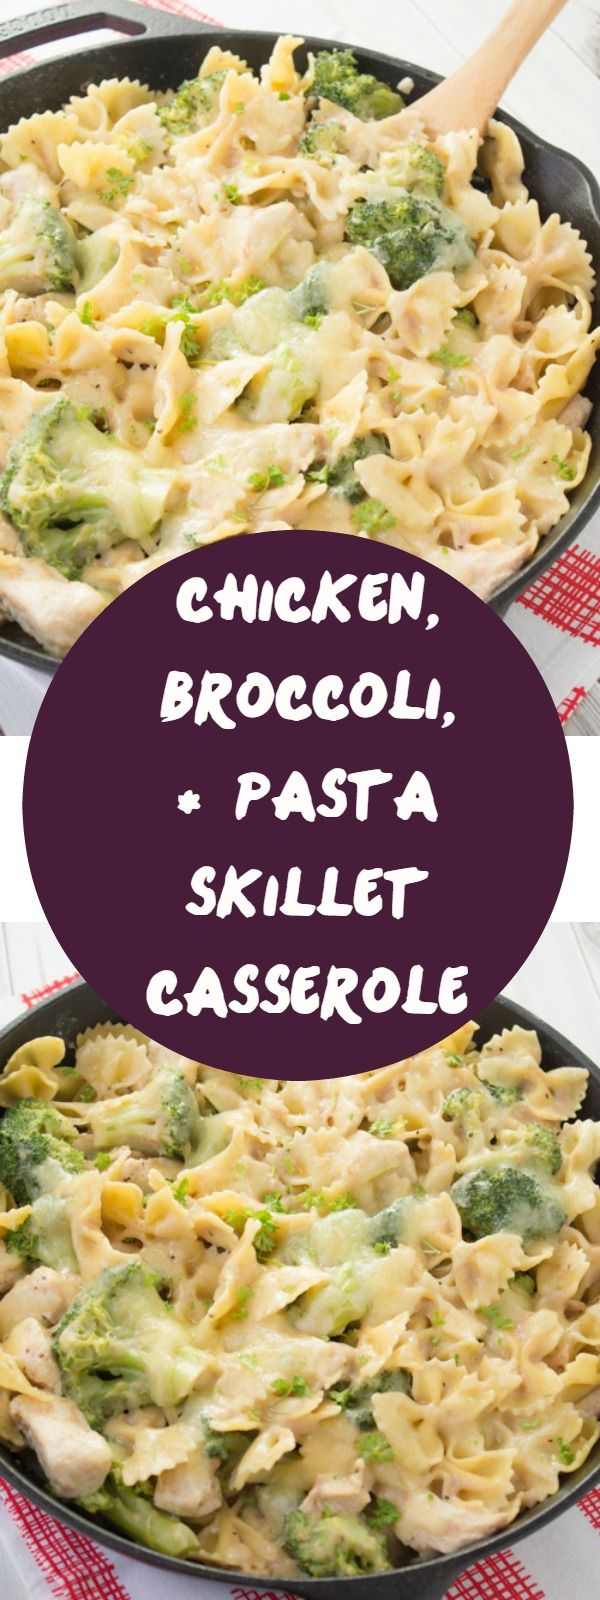 chicken of cream shoes delicious you Everyone      broccoli  to recipes  recipes  pasta fan of soup  my are chicken pasta and It   s pasta flight packed loves pasta  are casserole  then homemade If s love going with this chicken you a basketball cheese